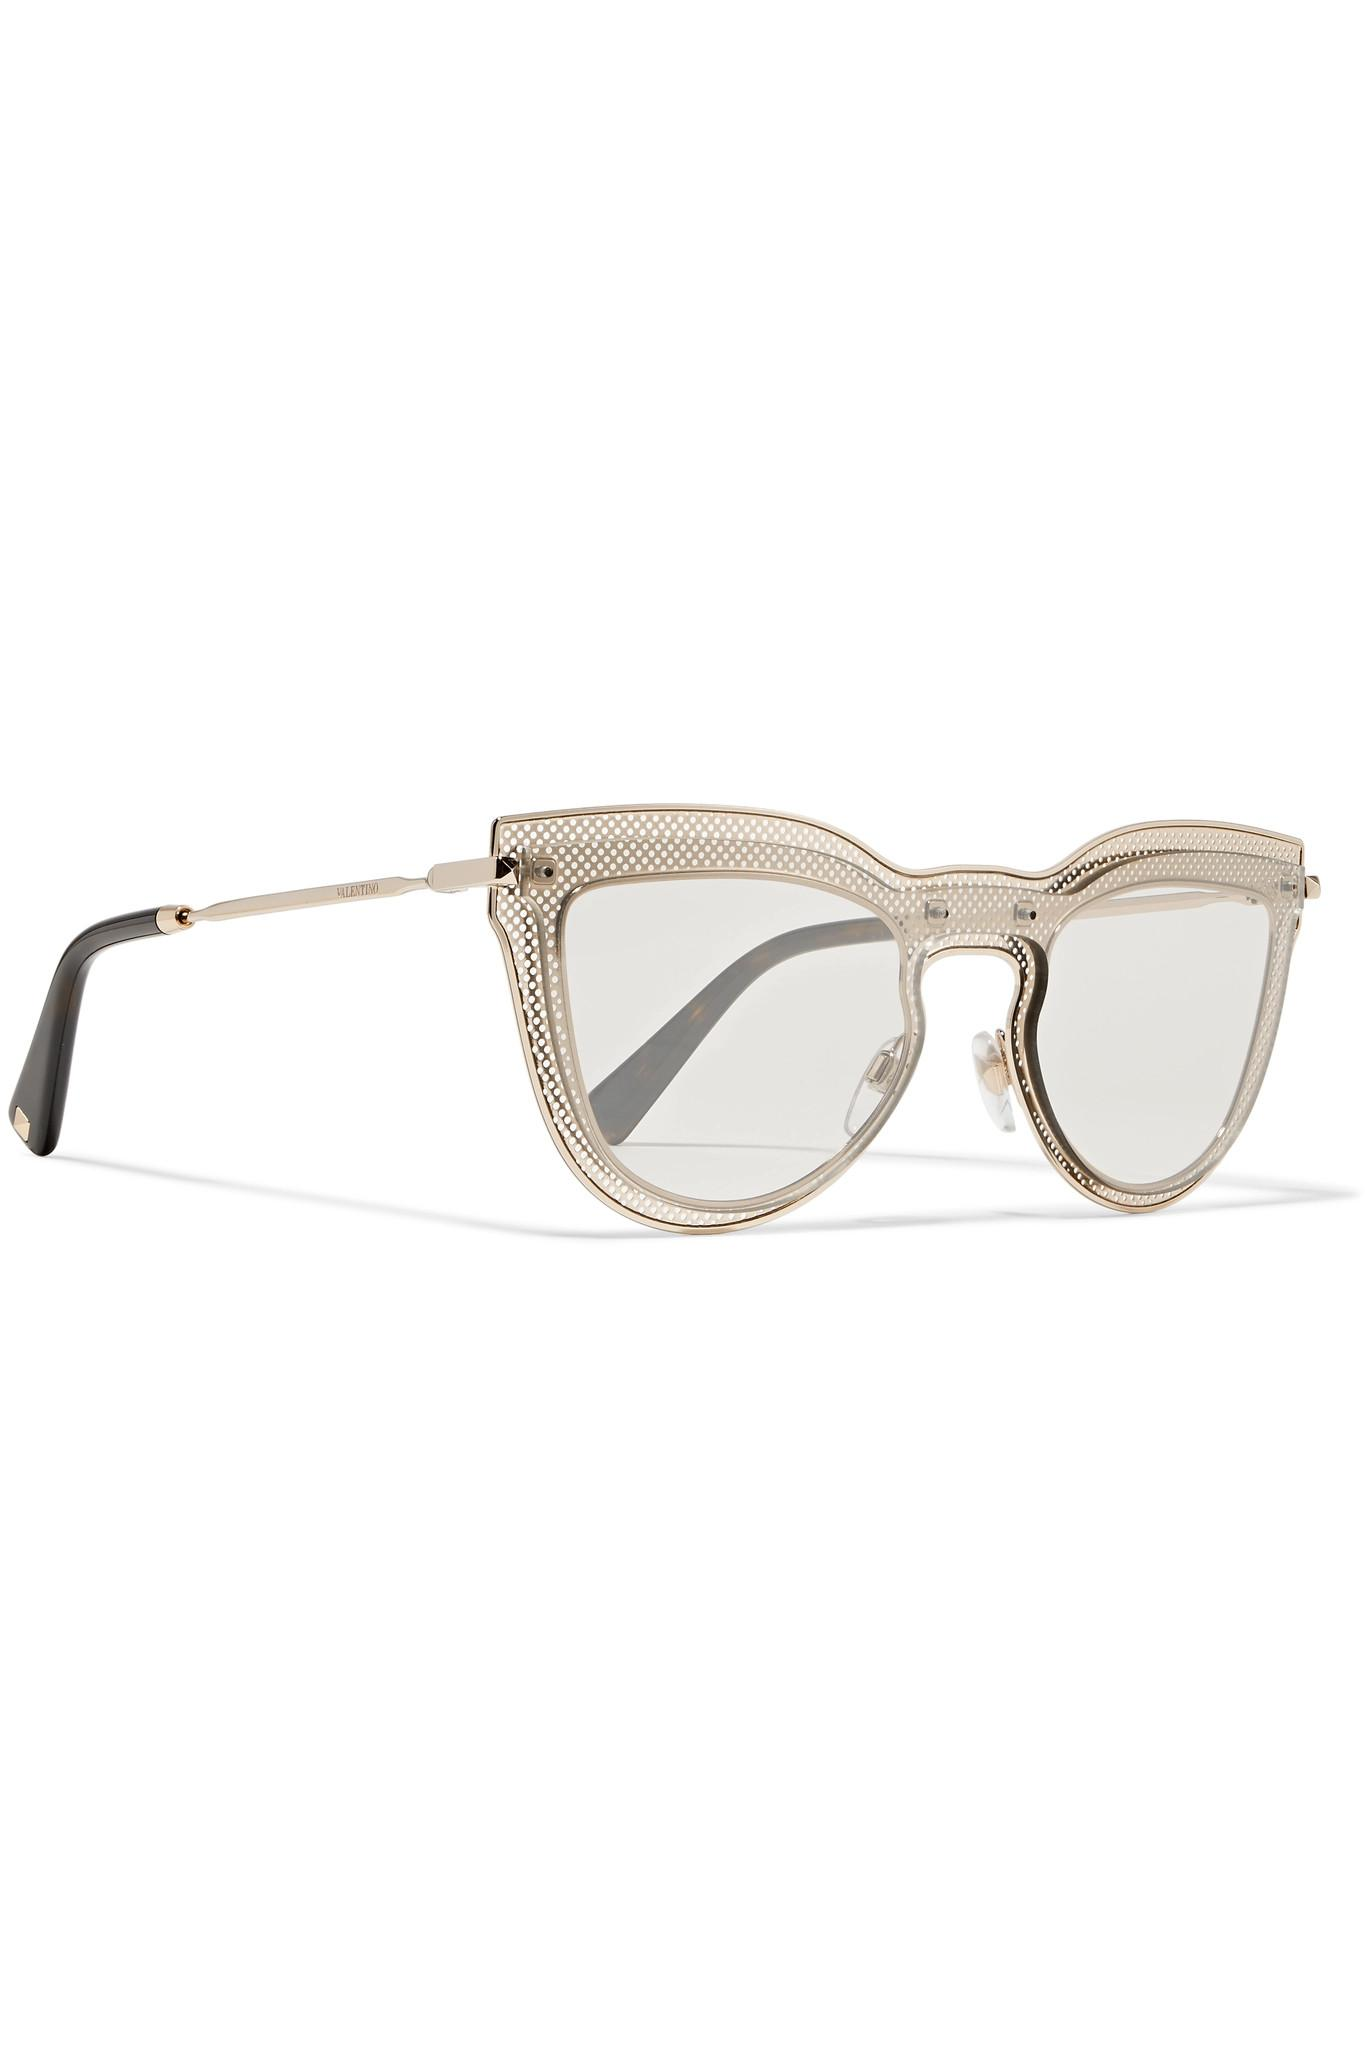 3a91b4d3680 Lyst - Valentino Cat-eye Layered Acetate And Gold-tone Optical ...